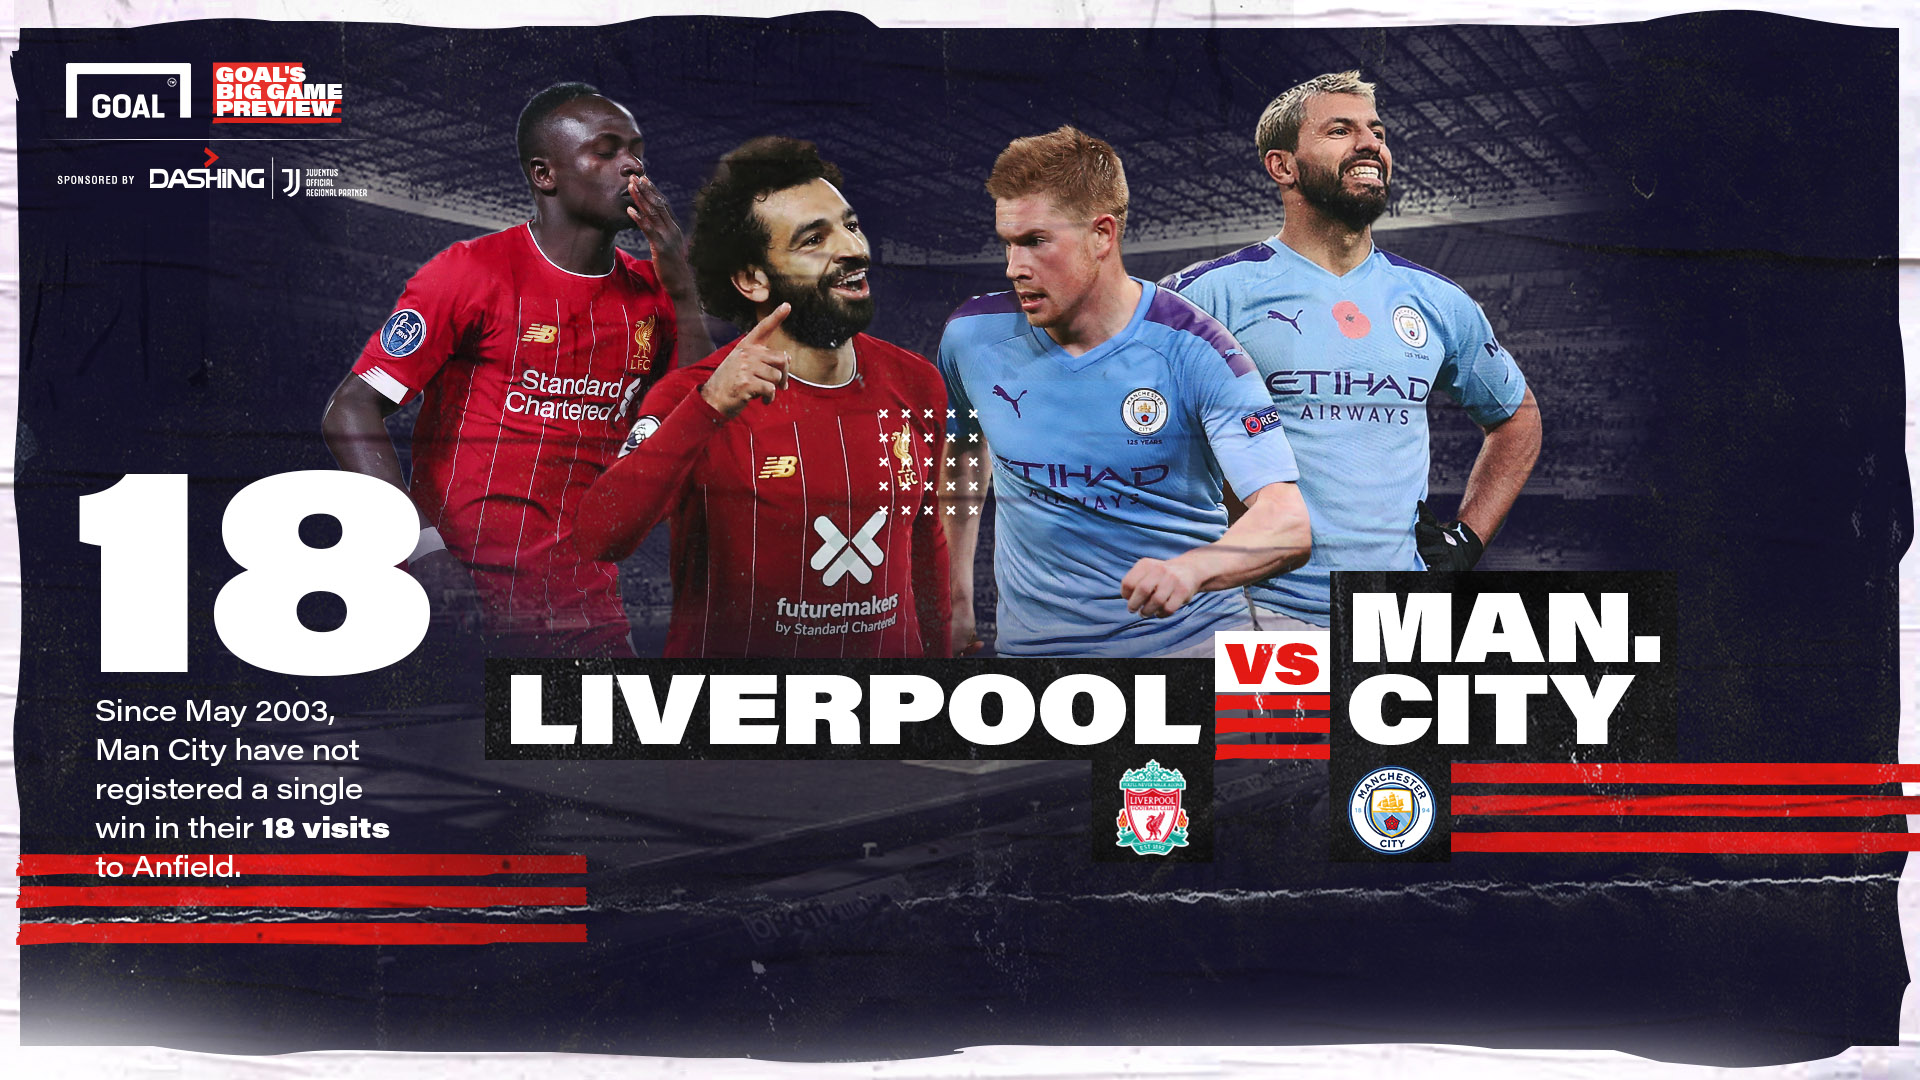 Liverpool vs Manchester City: how and where to watch